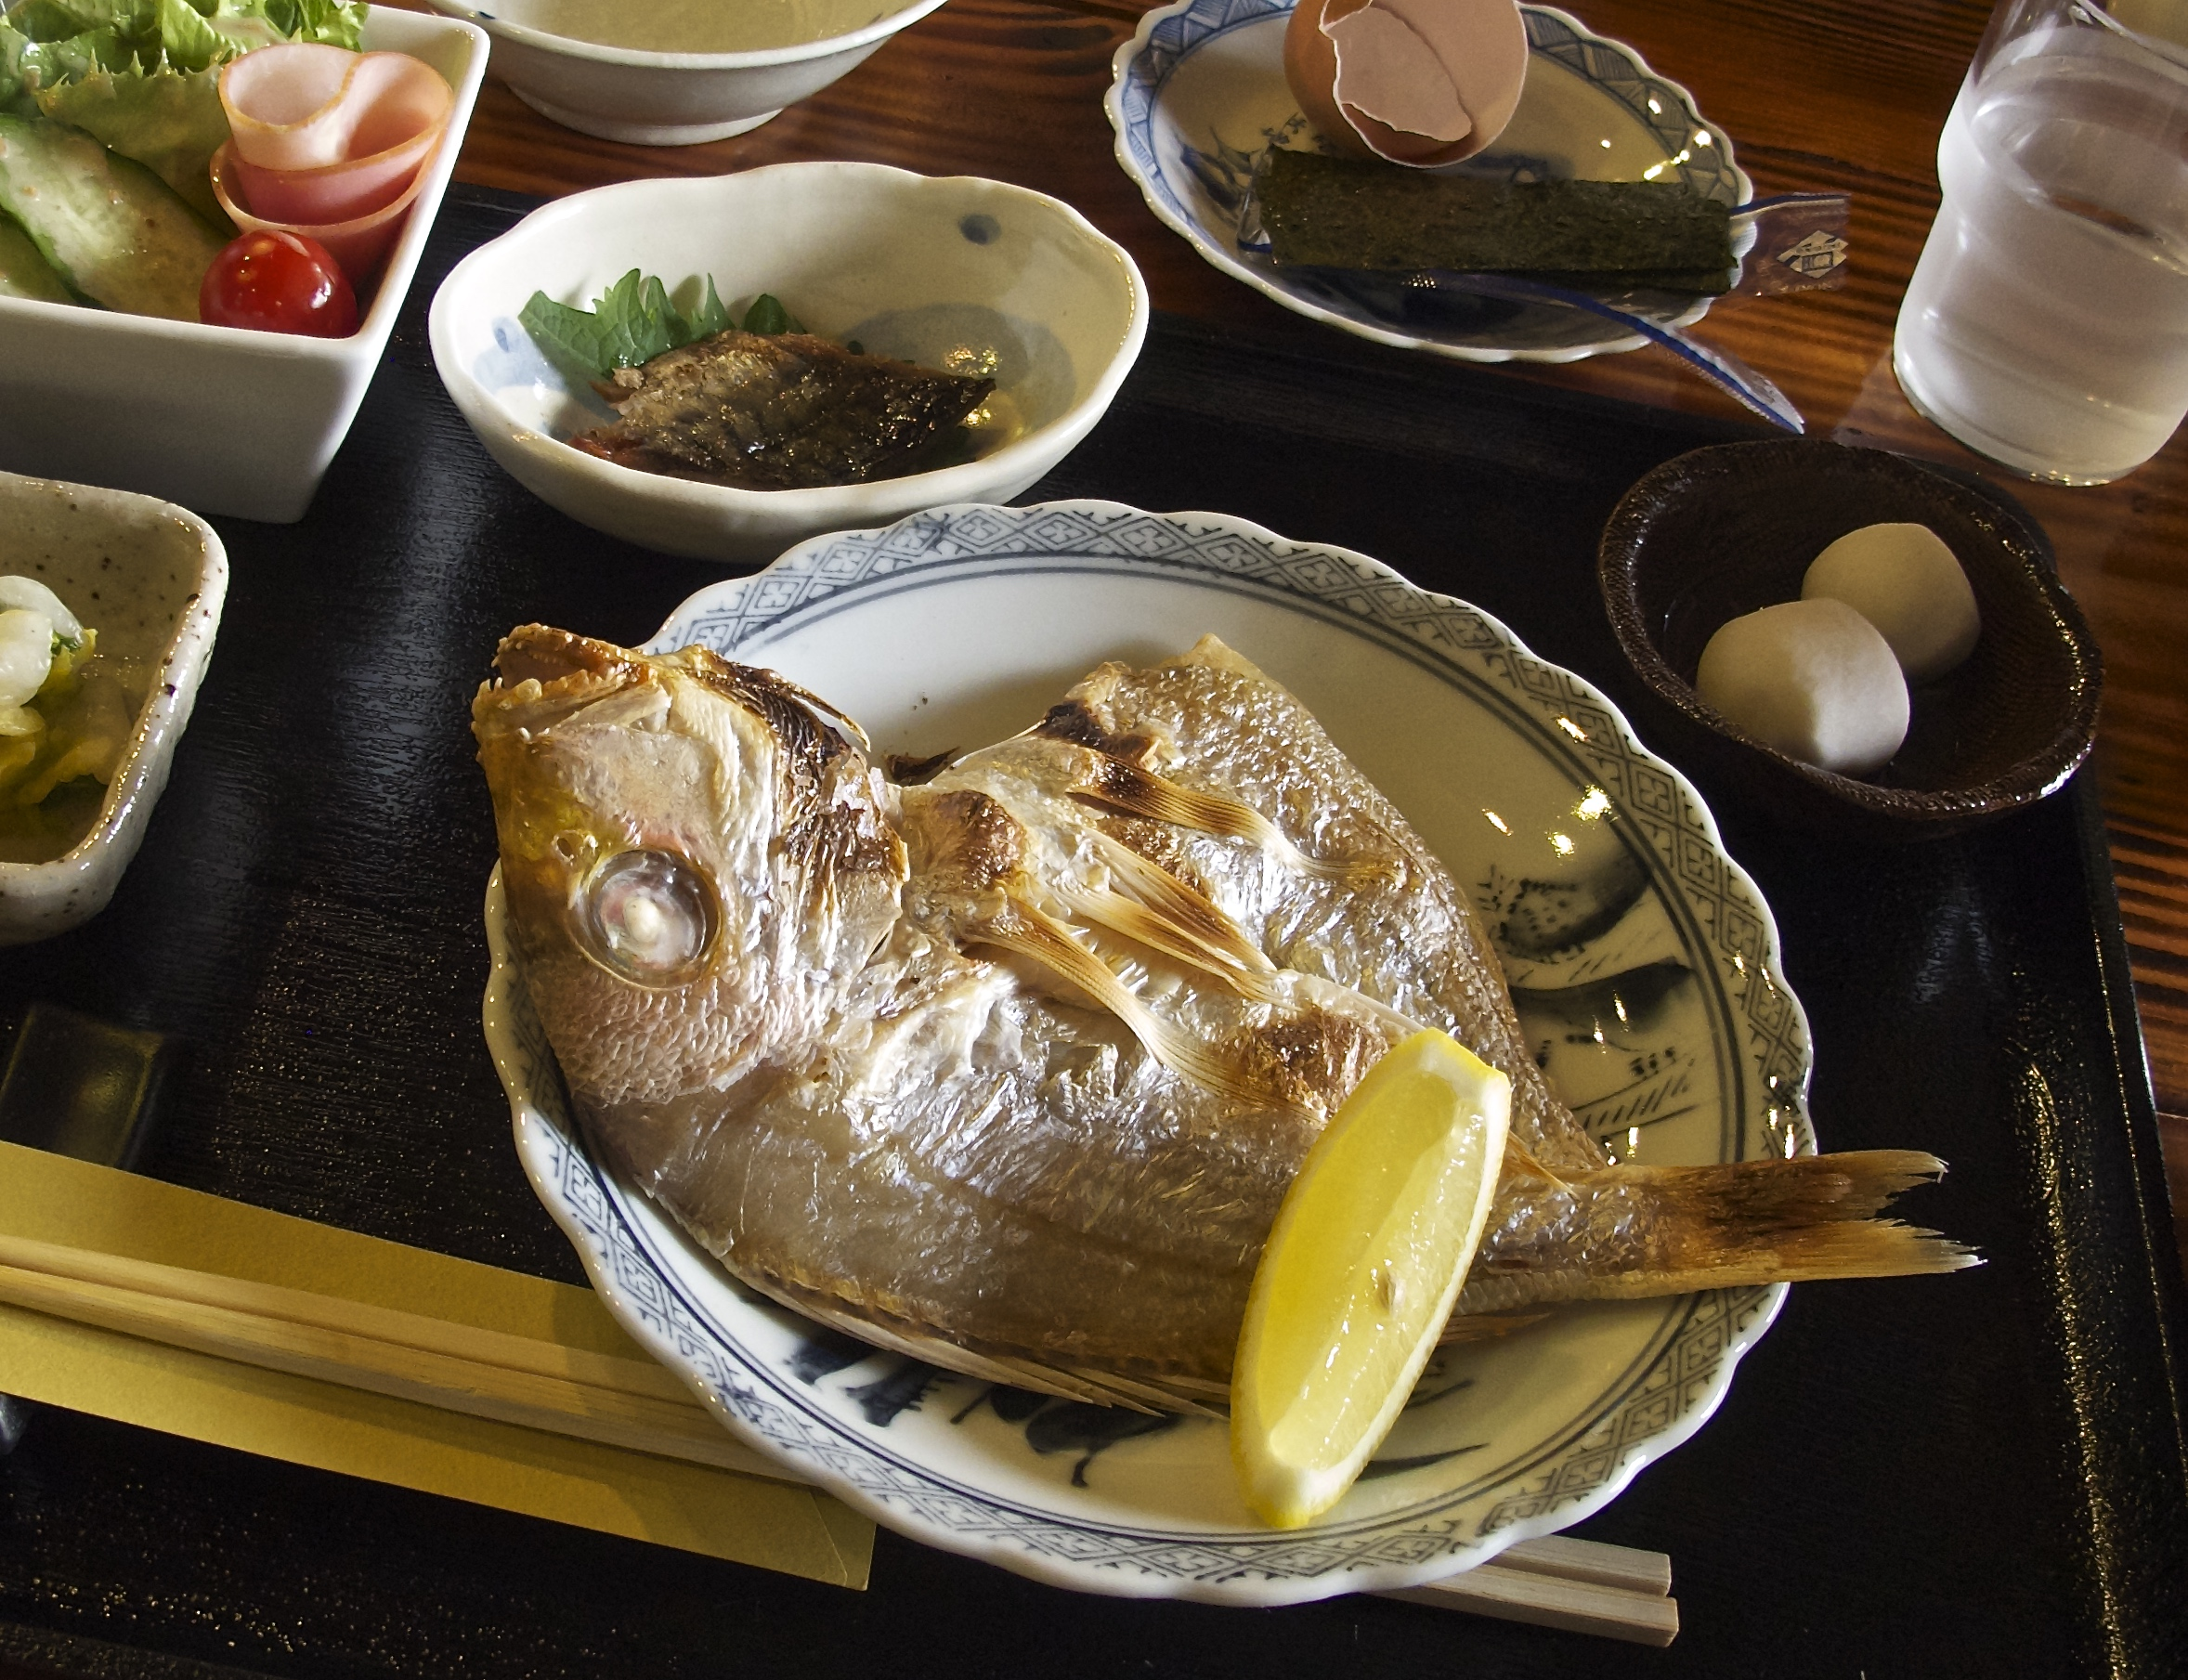 Breakfast at Kuraya is grilled seasonal fish along with a variety of other dishes.